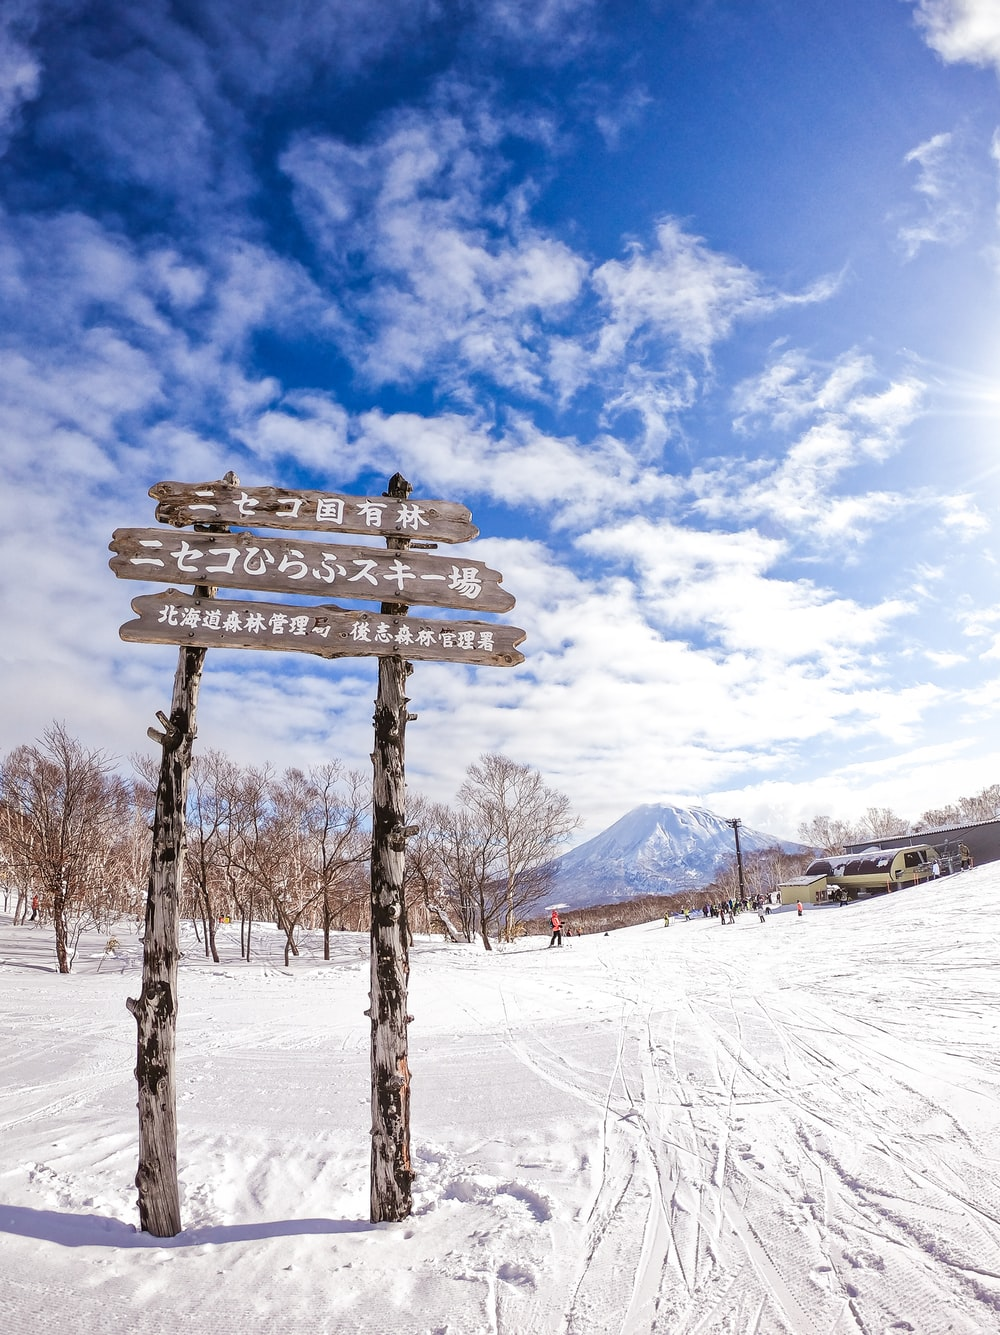 brown wooden bench on snow covered ground under blue and white cloudy sky during daytime